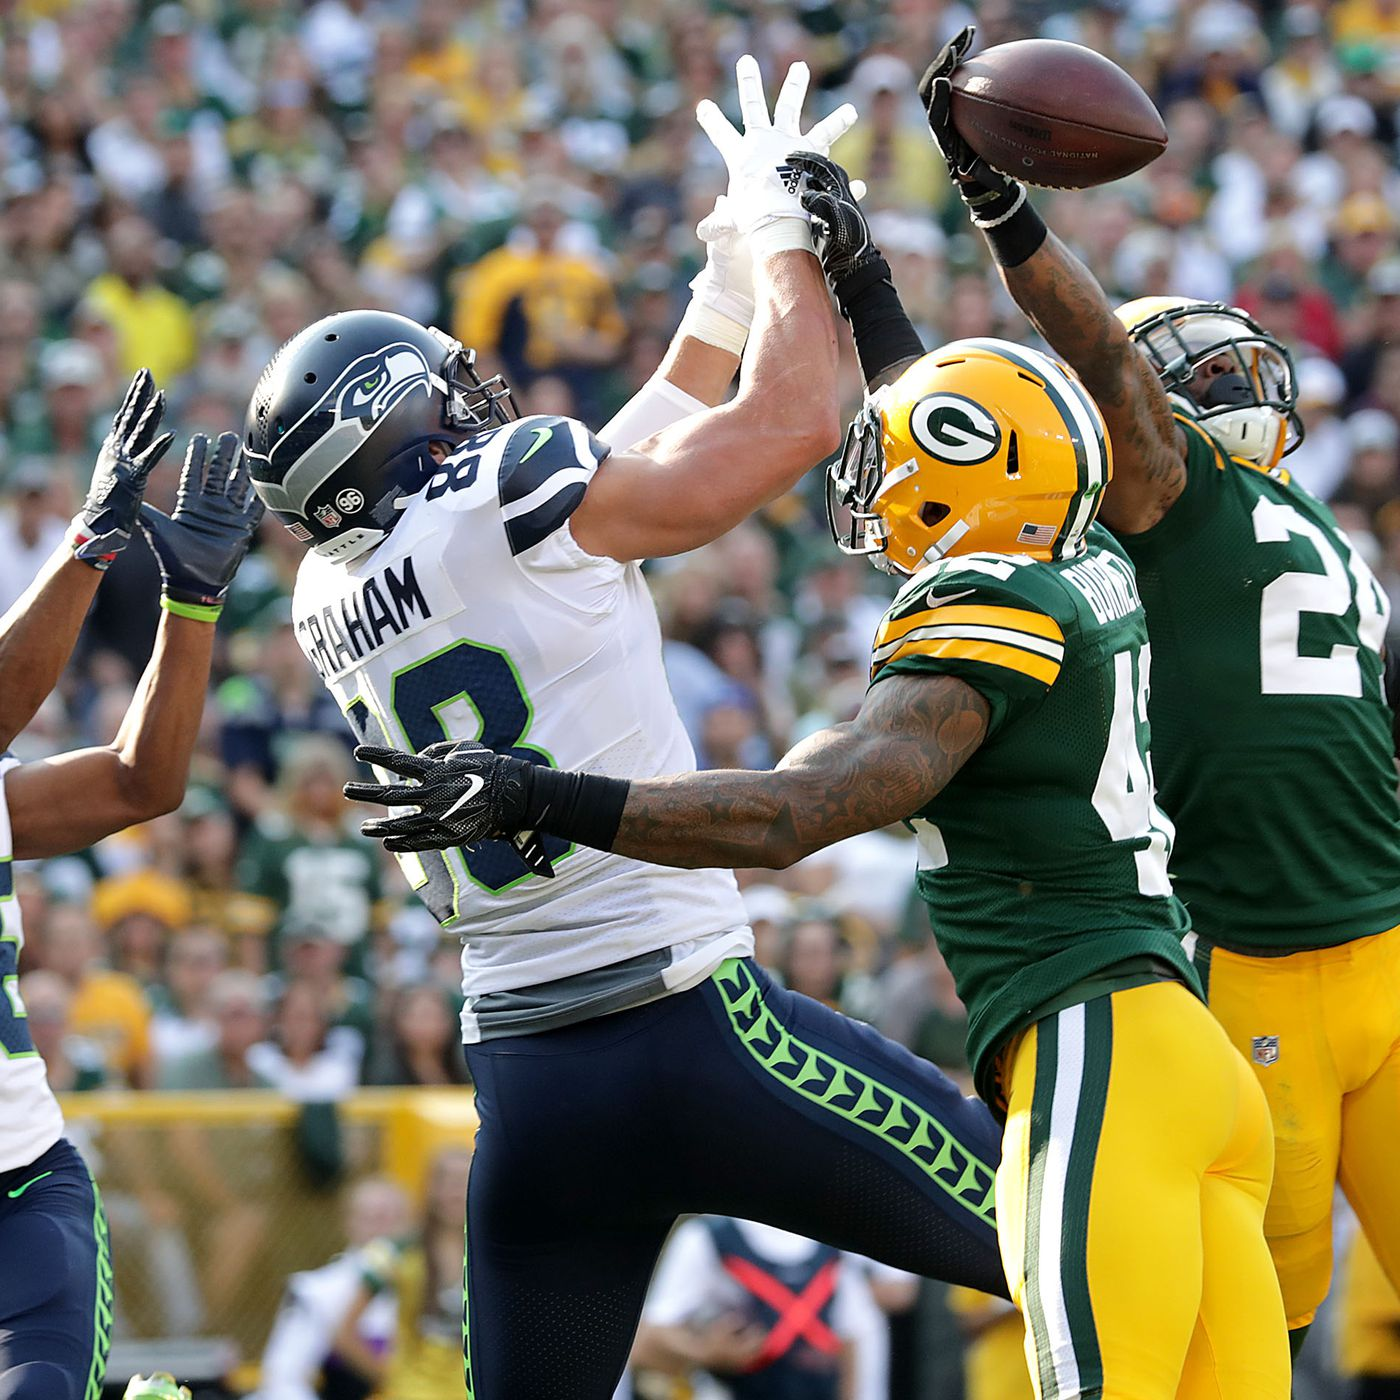 cc87a795c3d Packers vs. Seahawks 2018 live stream: Start time, TV schedule, and how to  watch online